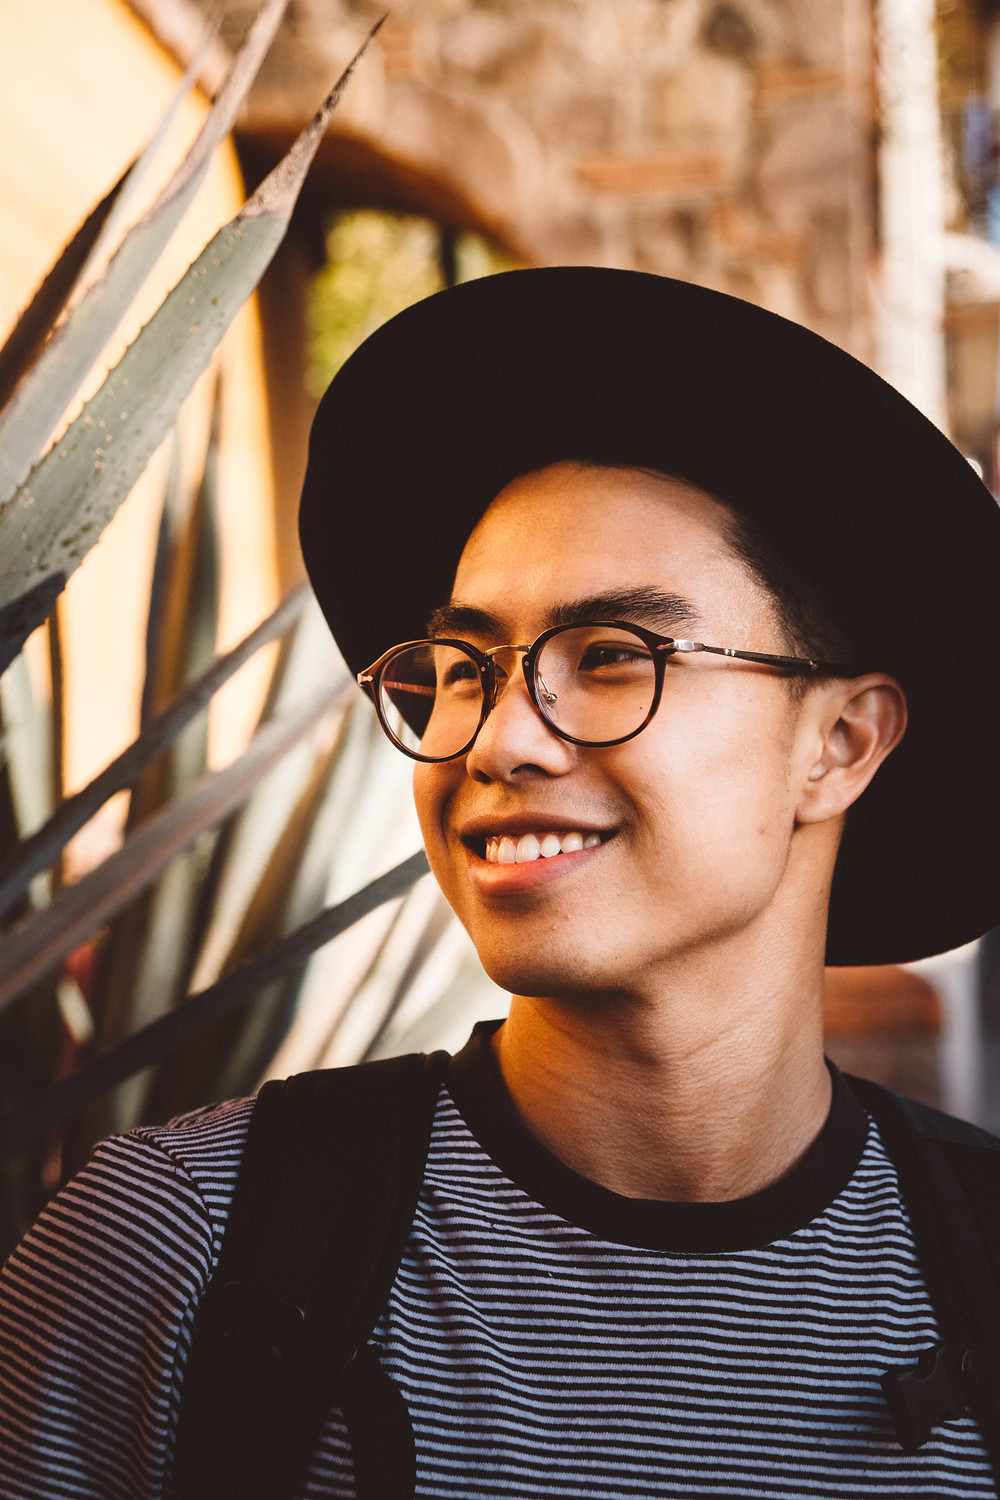 Asian Man with hat and glasses on smiling